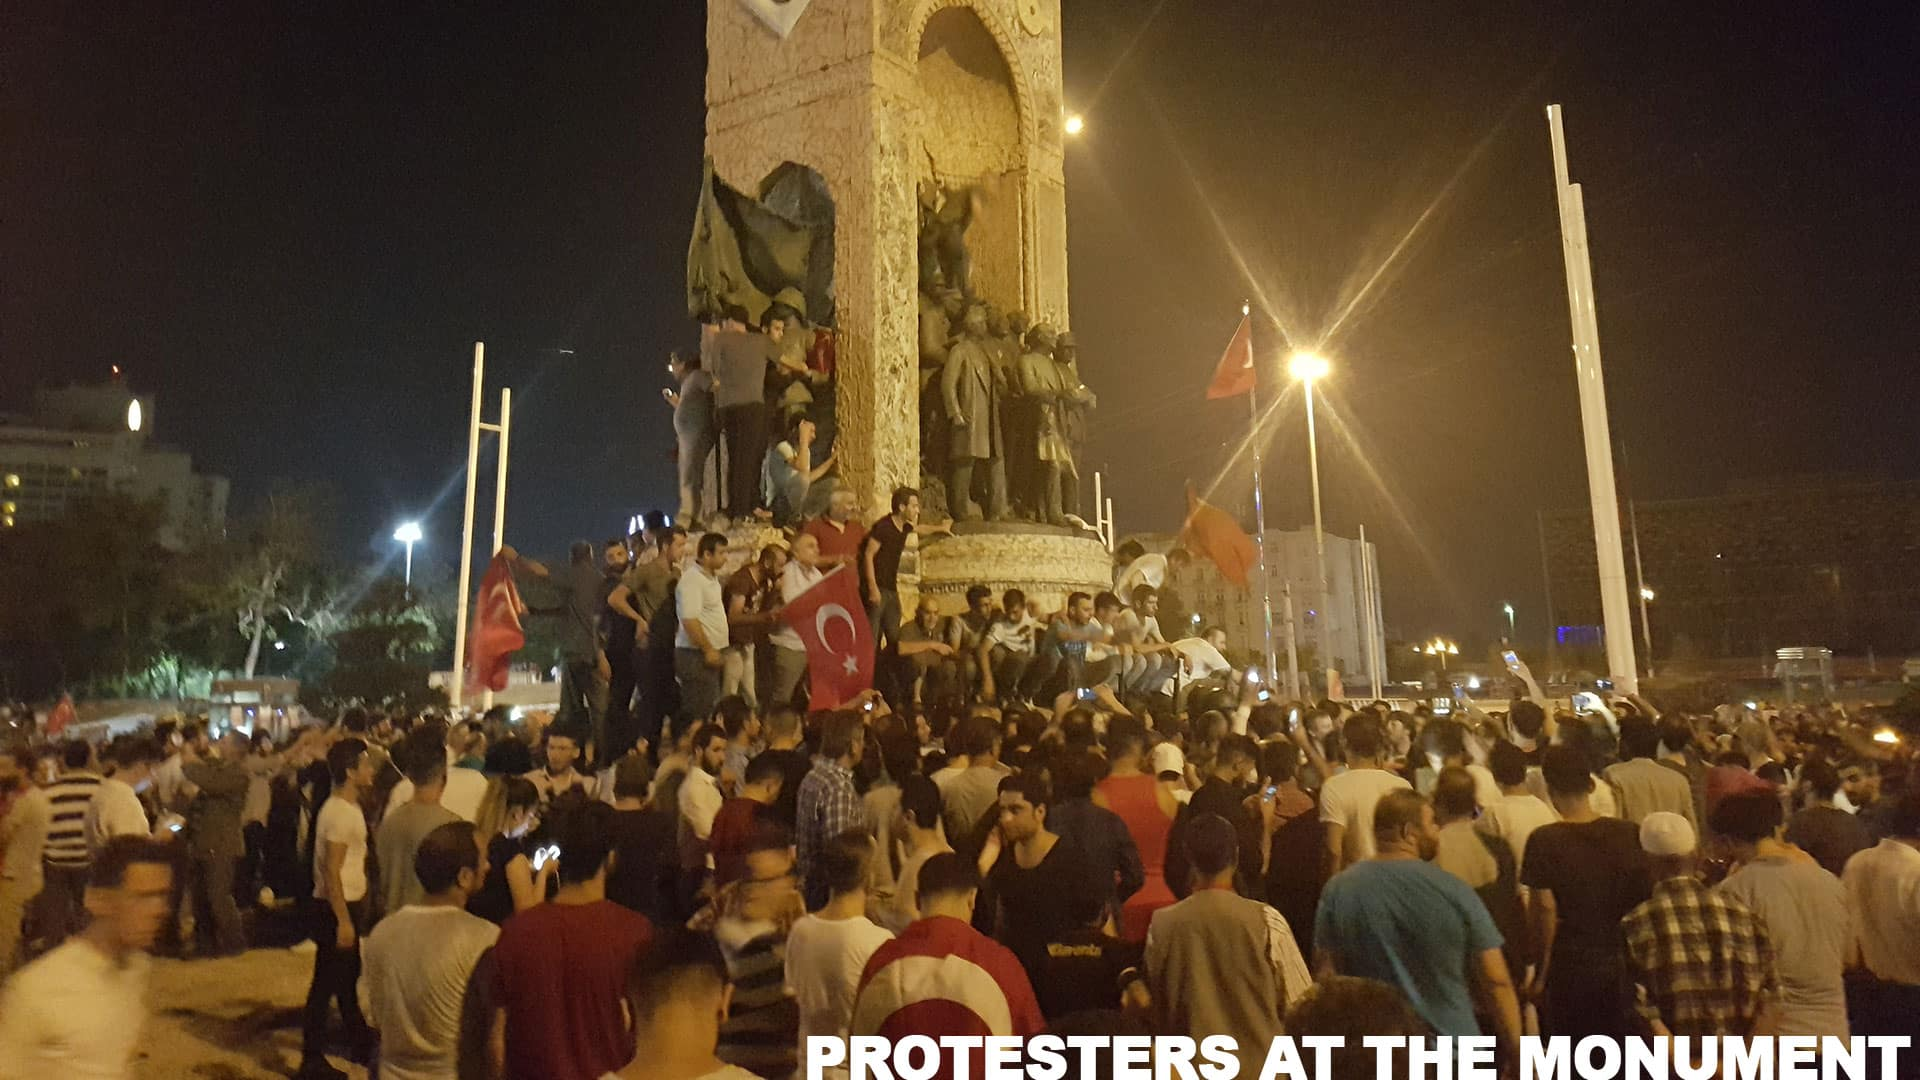 Protesters at Taksim Square